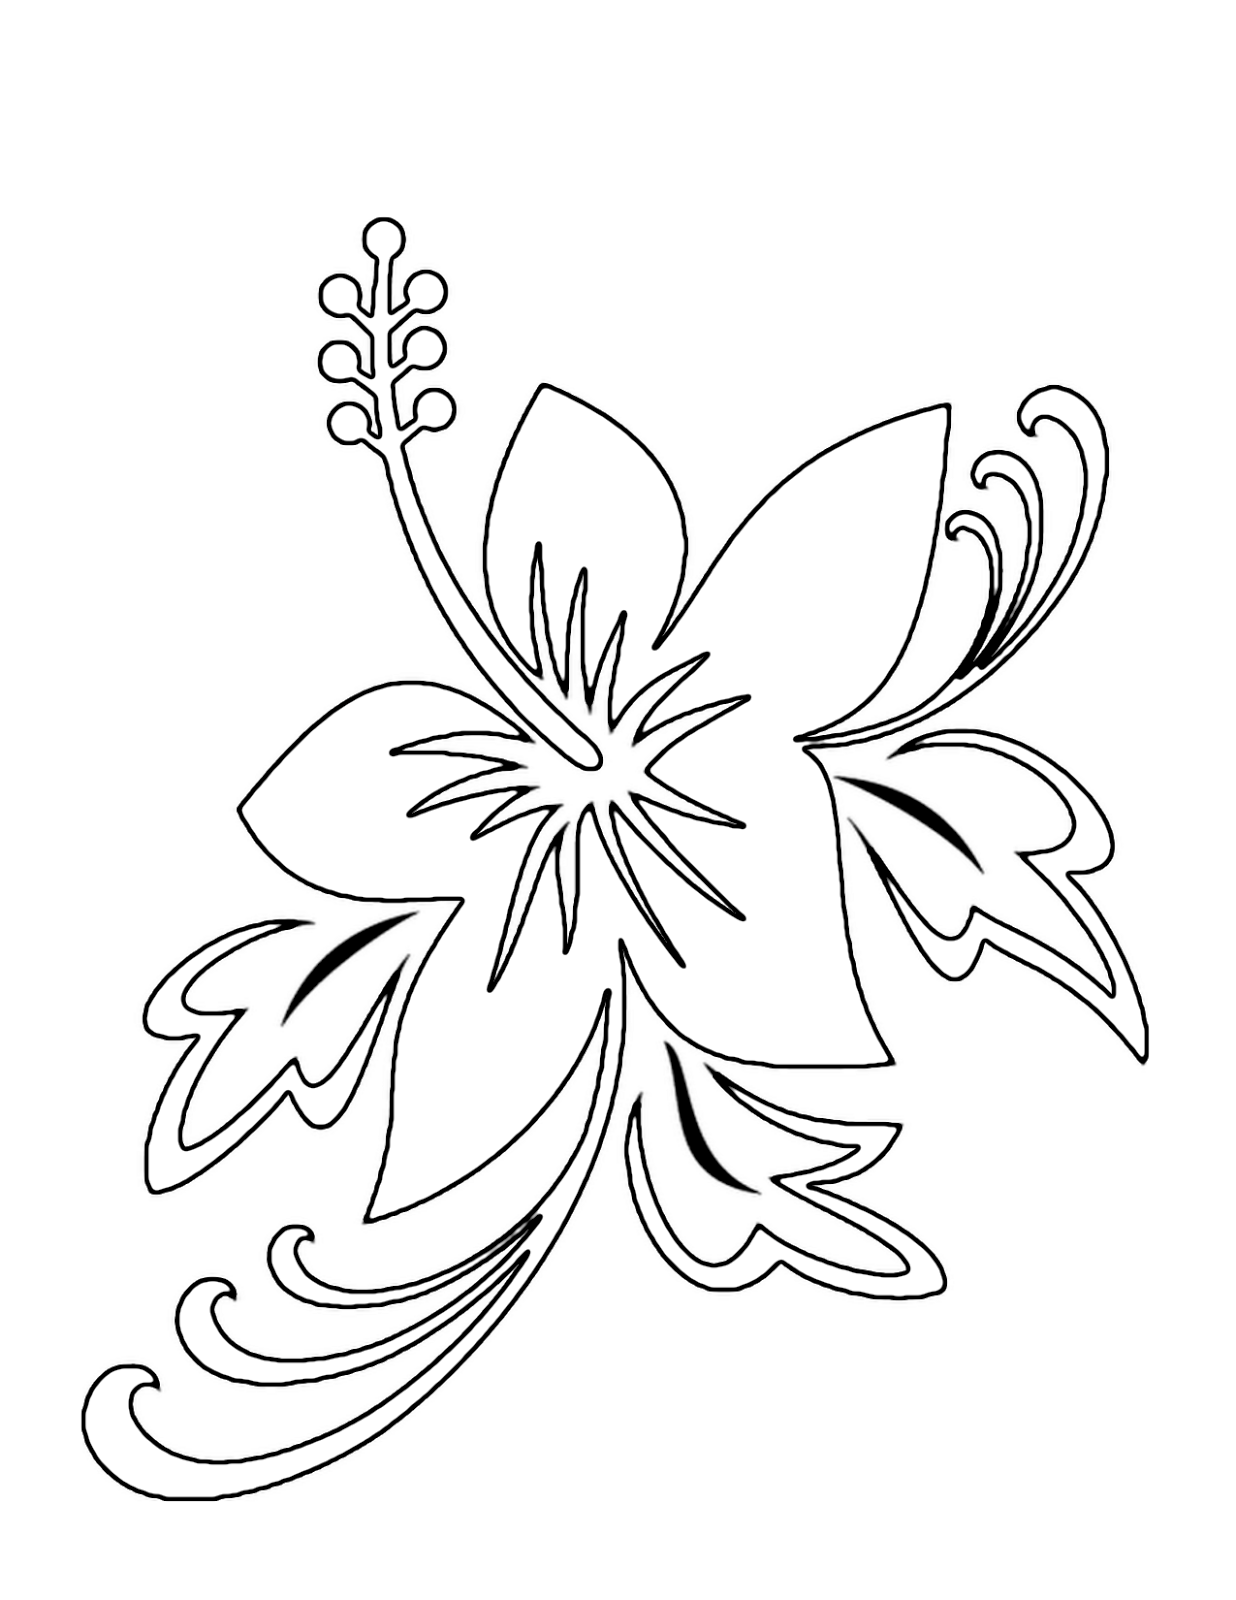 Coloring Pages DLTK's Crafts for Kids - flowers coloring pages for kids